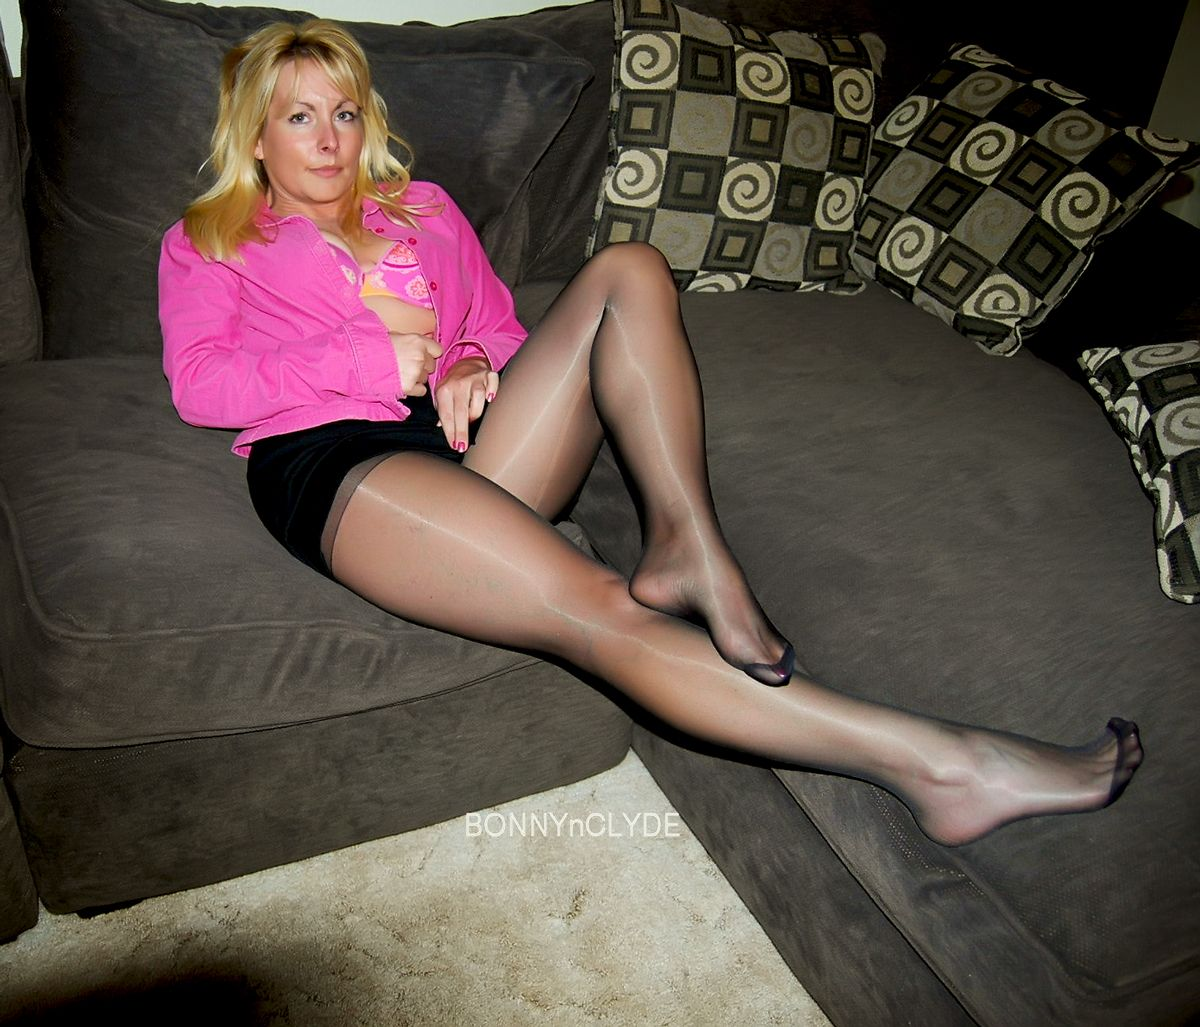 The best hand-picked free pantyhose MILF sex pics sorted by categories: mature, MILF in pantyhose Mellanie Monroe undressing and spreading her legs off skirt and hose for nudes; Mature vixen Christina Cross enjoys foot fetish sex with .